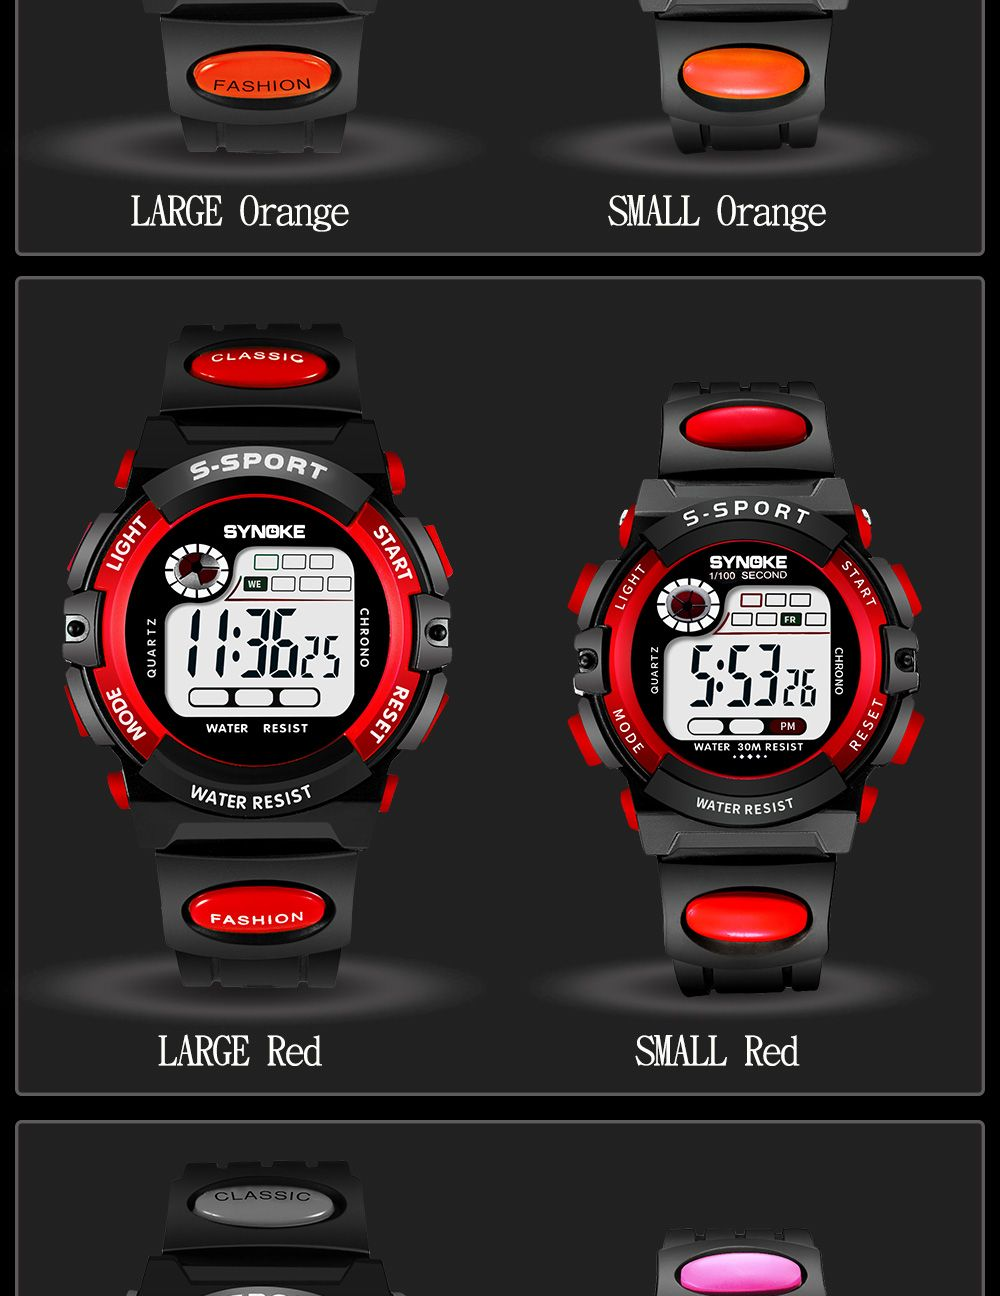 SYNOKE 99269 Sports Waterproof  Electronic Watch